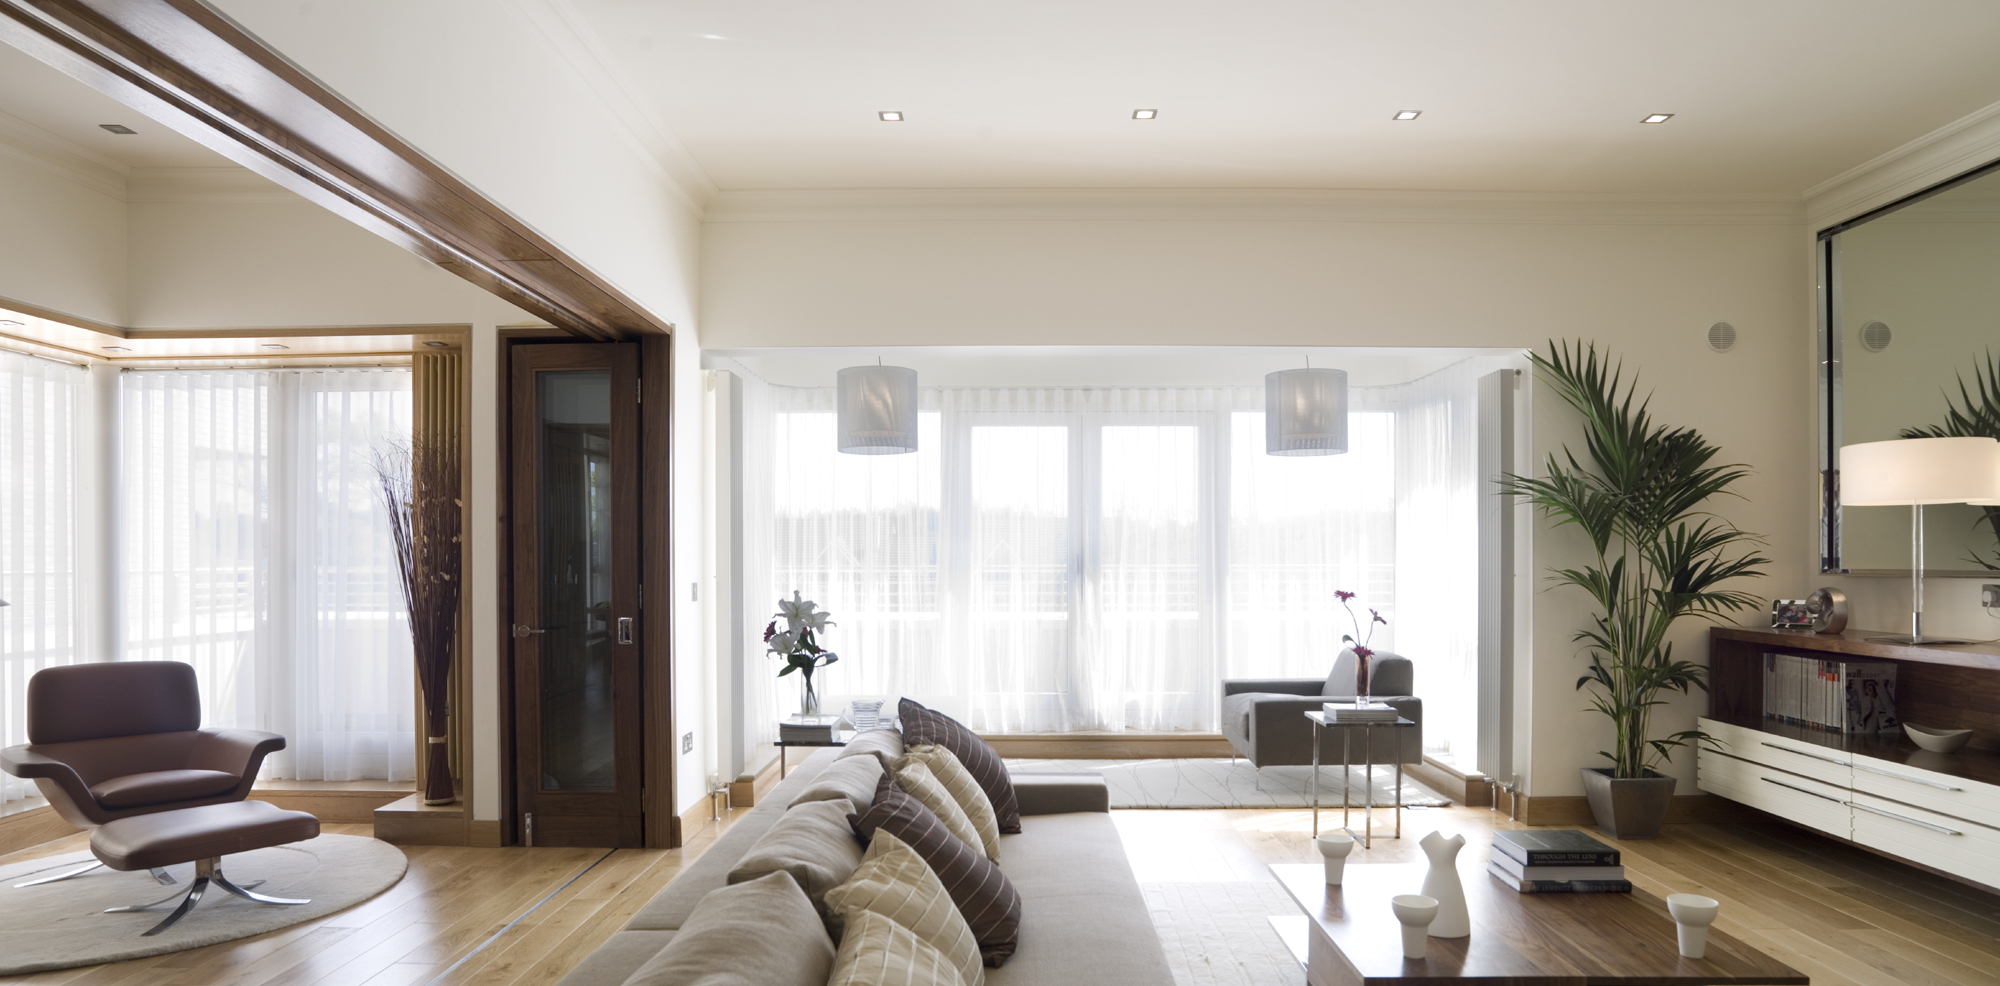 Bespoke Fitted Furniture Design- Penthouse Apartments - Penthouse Lounge Design Photograph